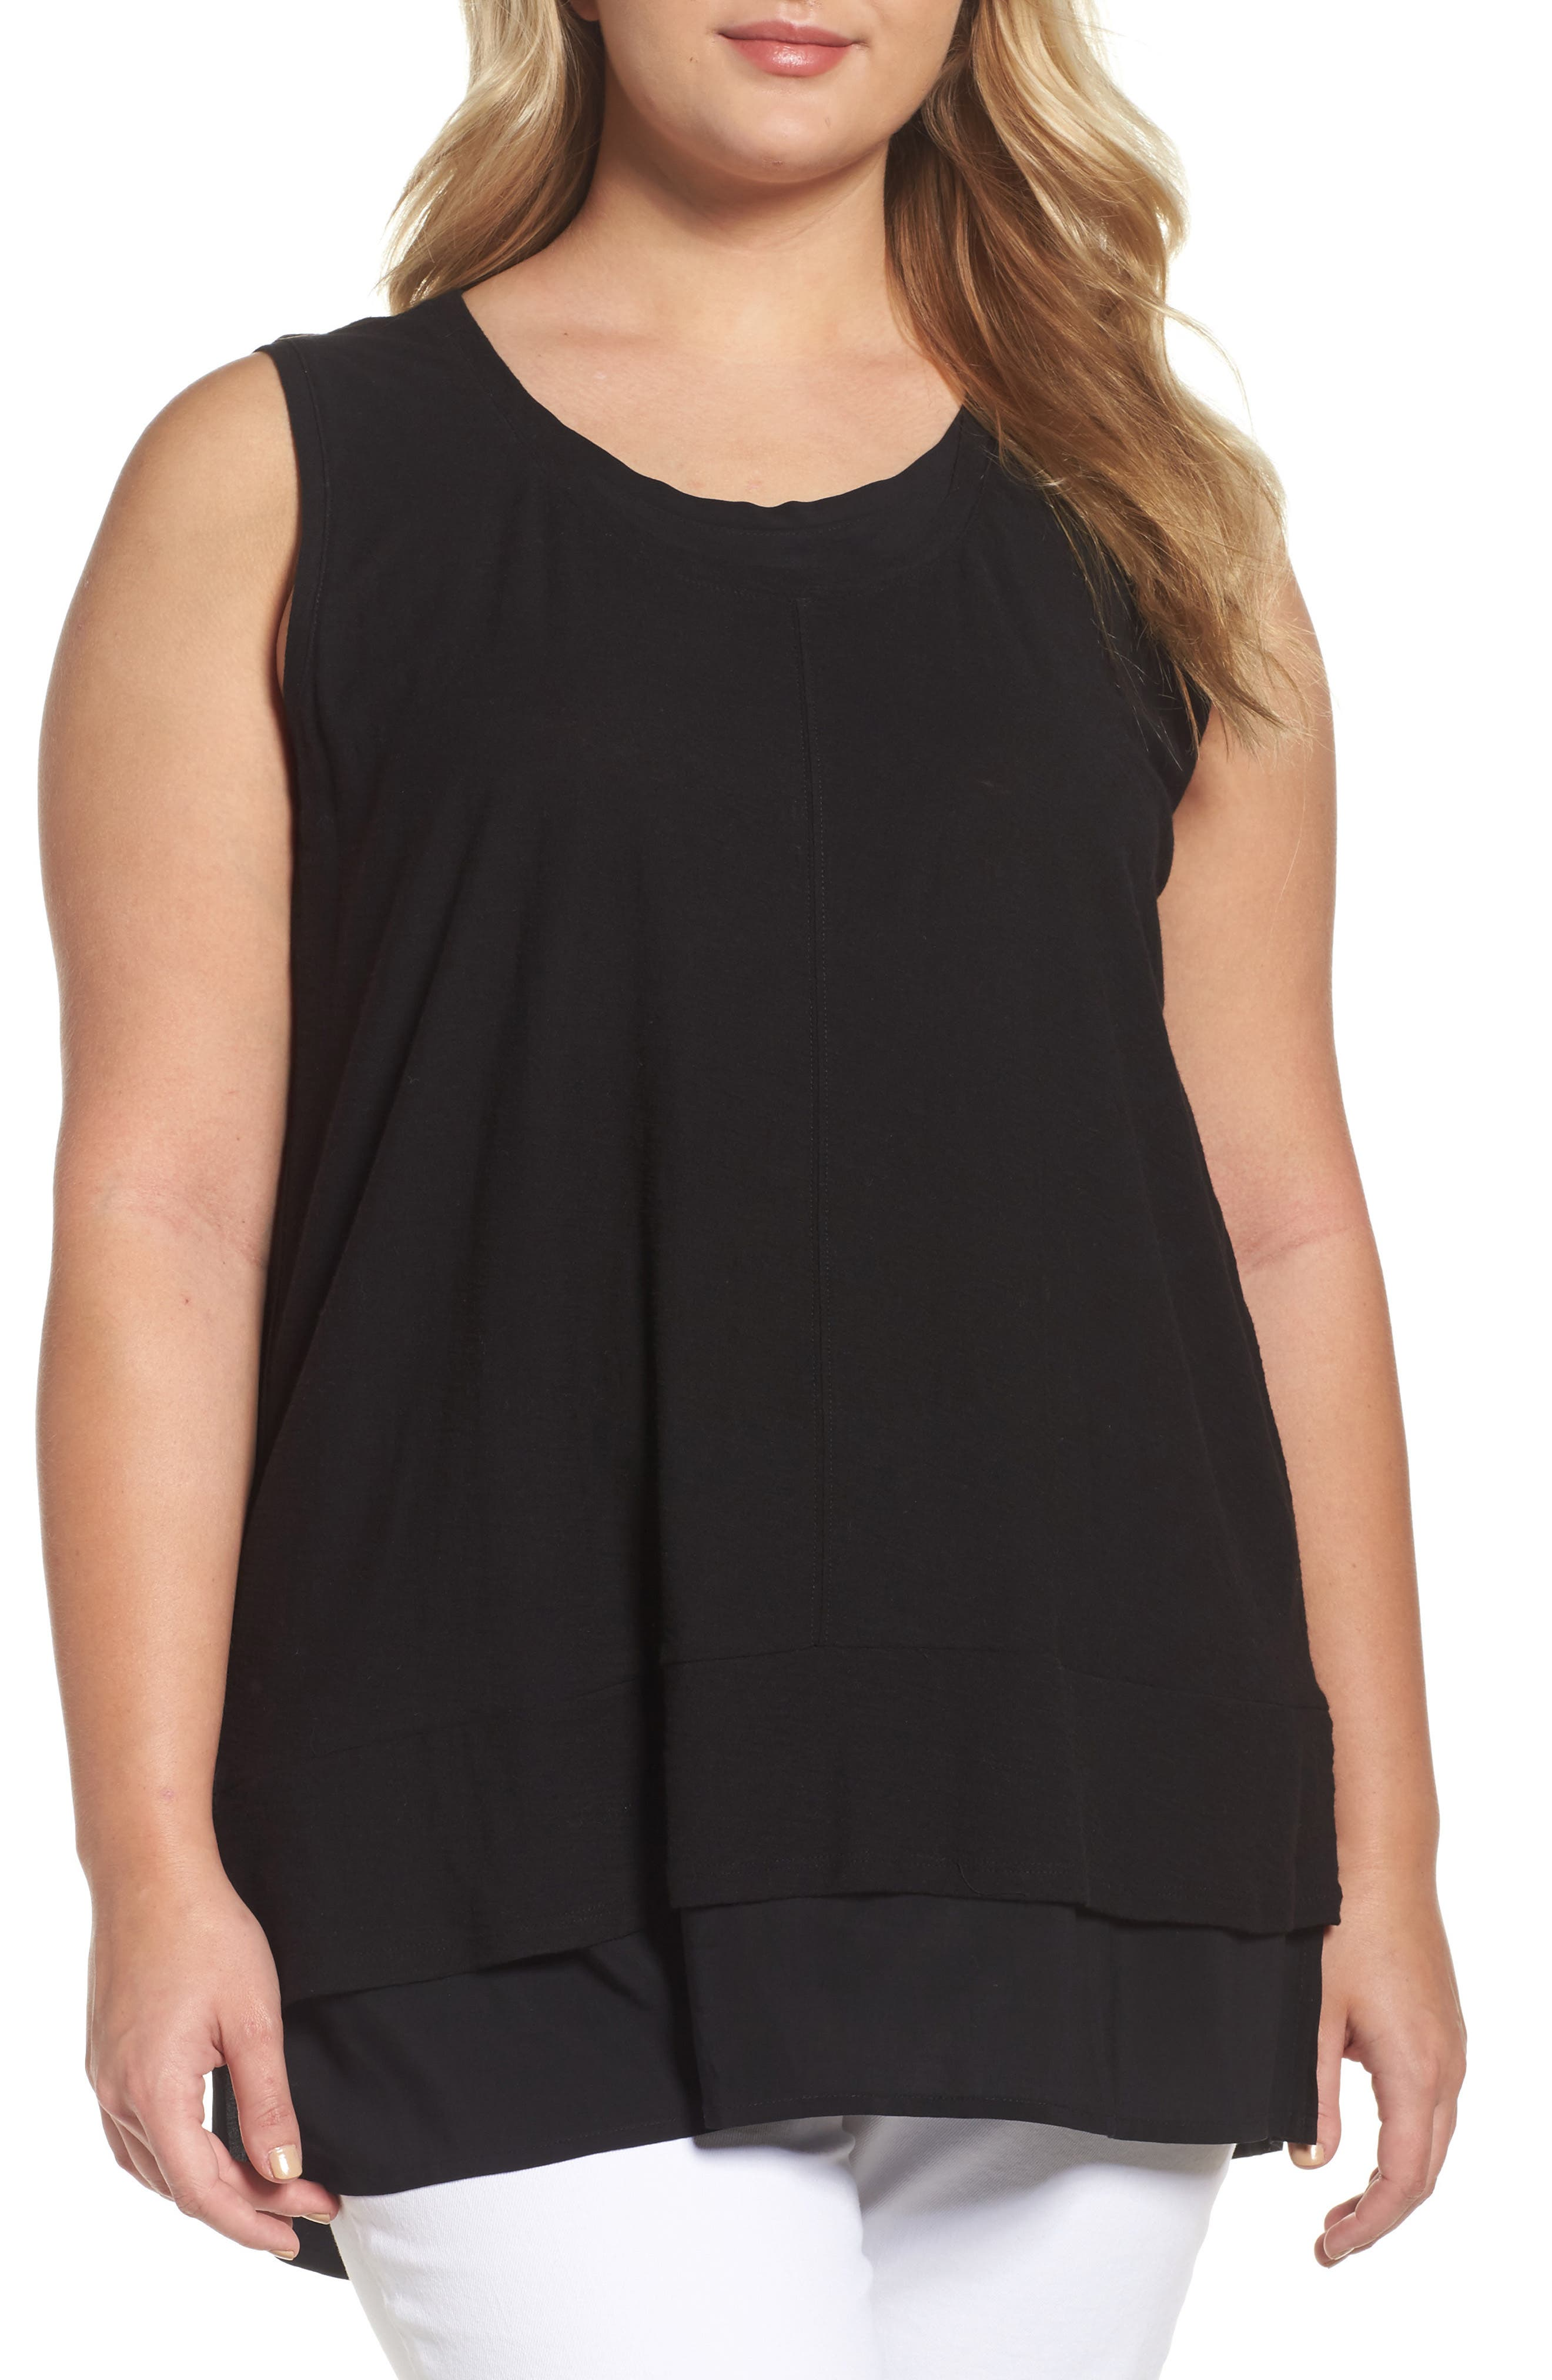 Vince Camuto Mixed Media Sleeveless Top (Plus Size)